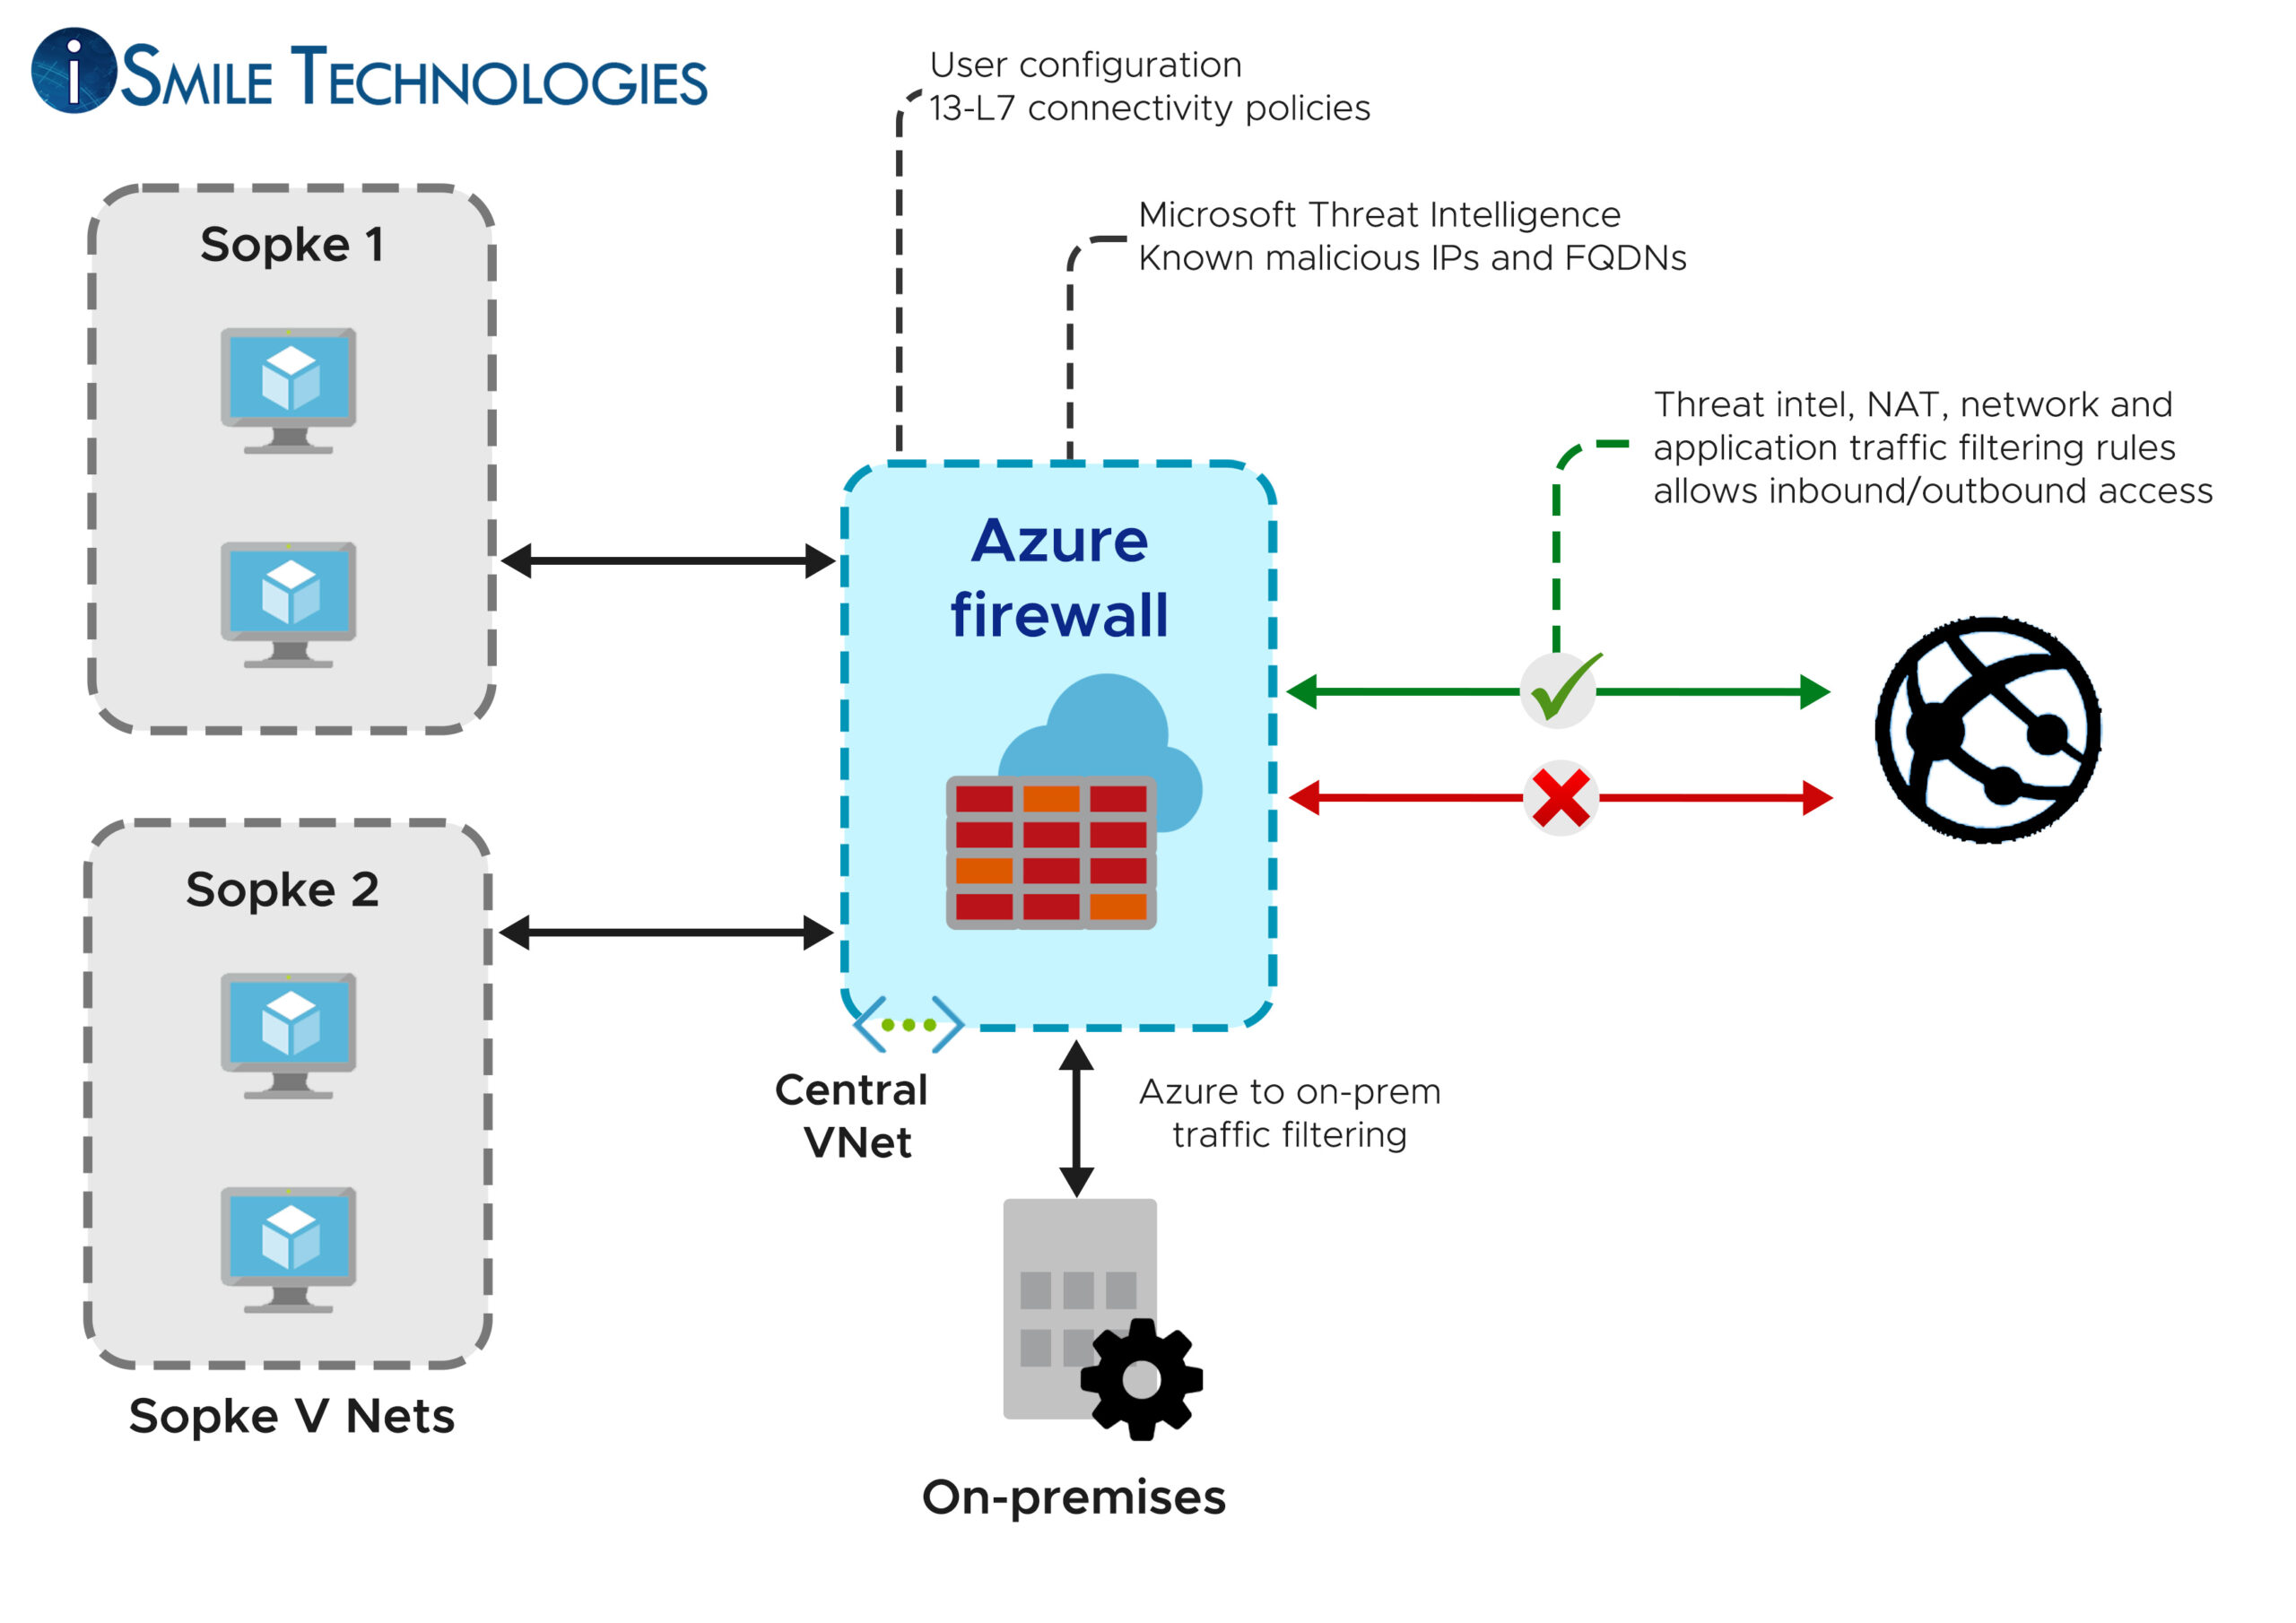 Capabilities Supported in Azure Firewall